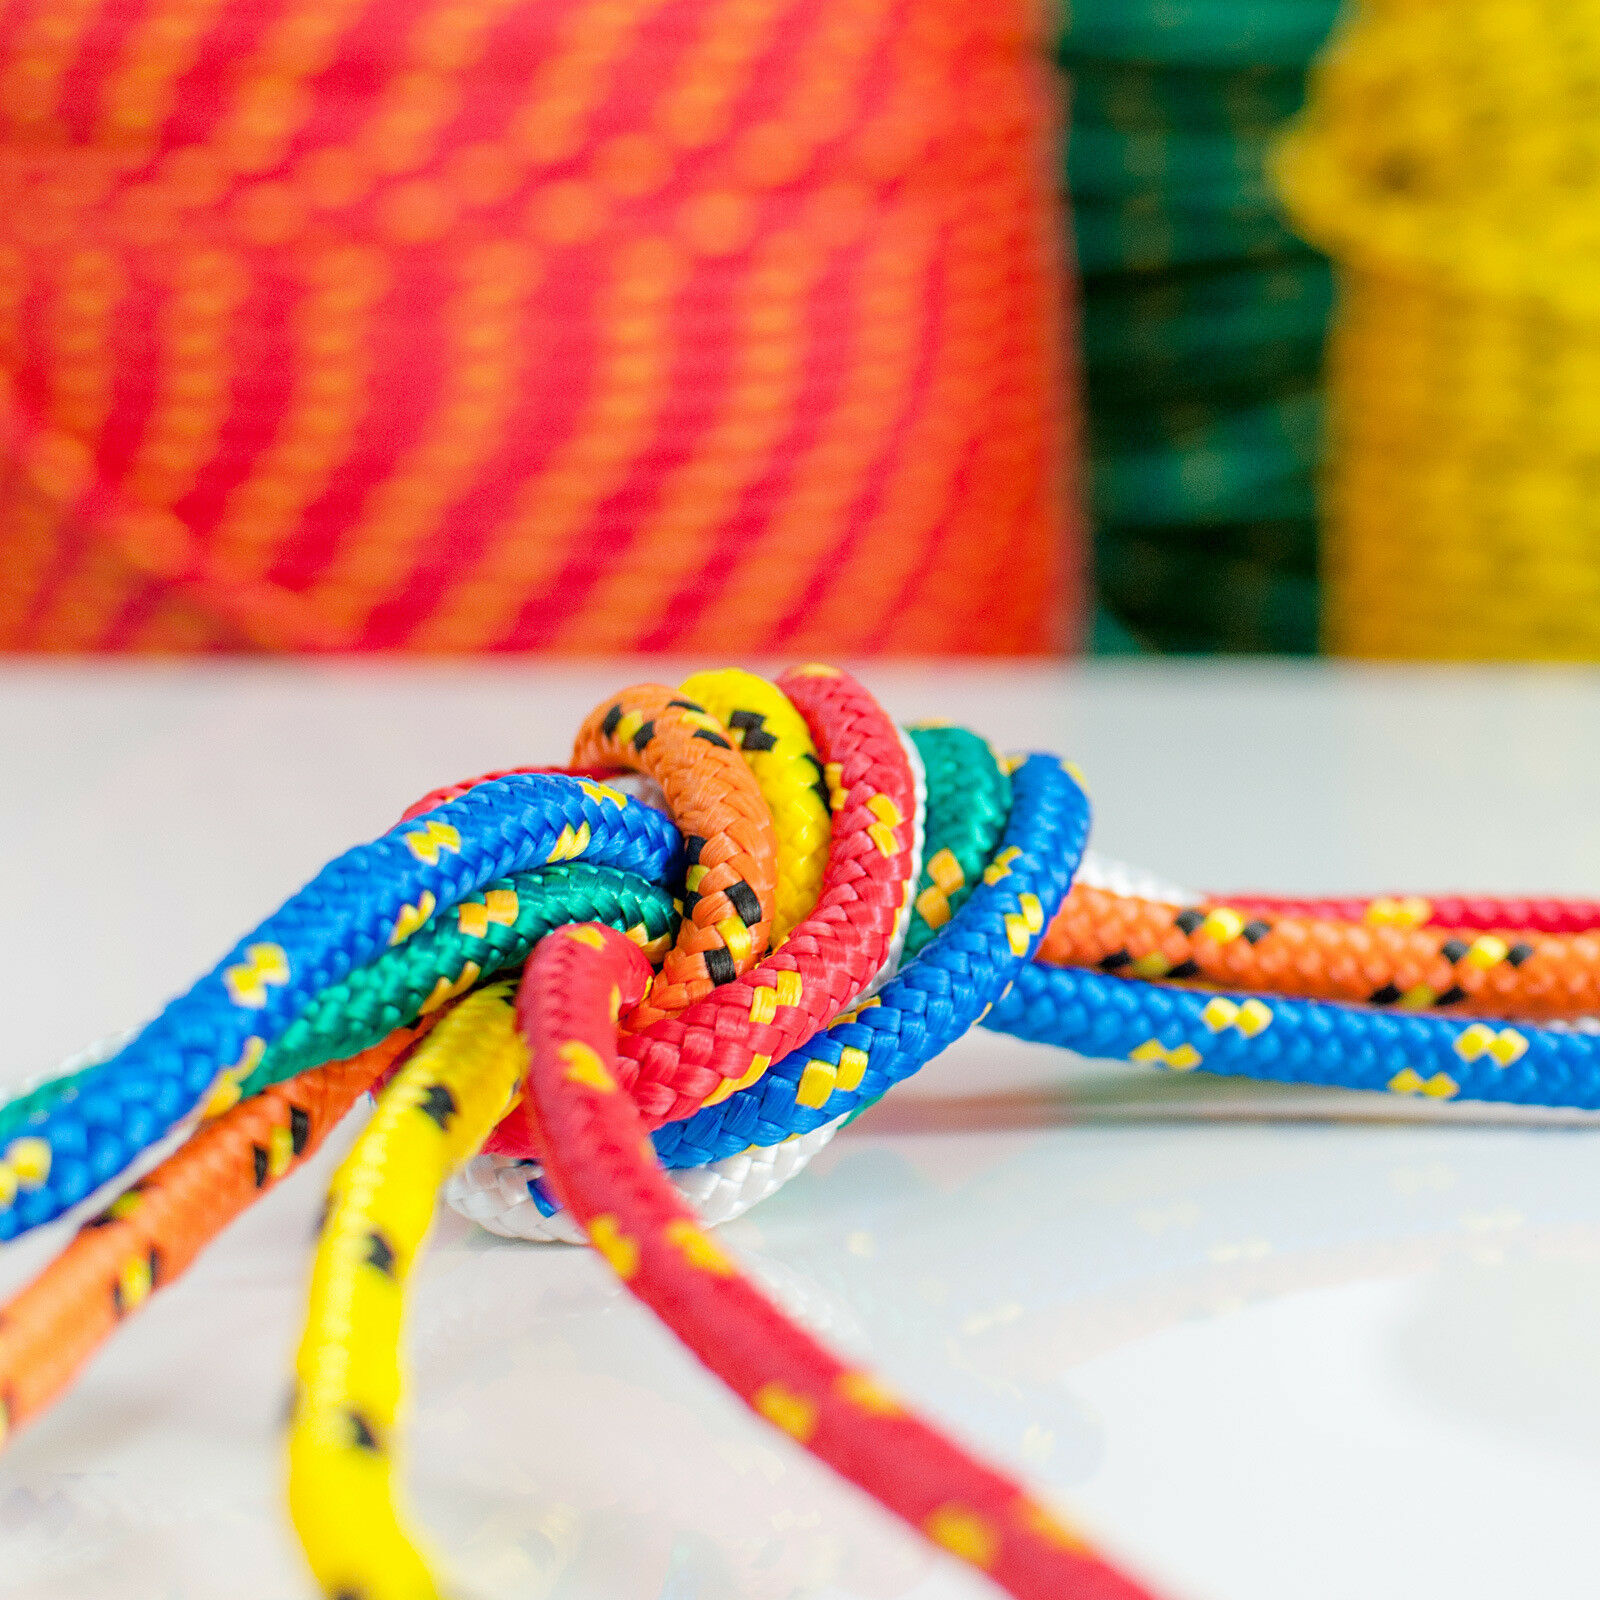 12mm POLYPROPYLENE ROPE braided polyrope weatherproof durable cord synthetic